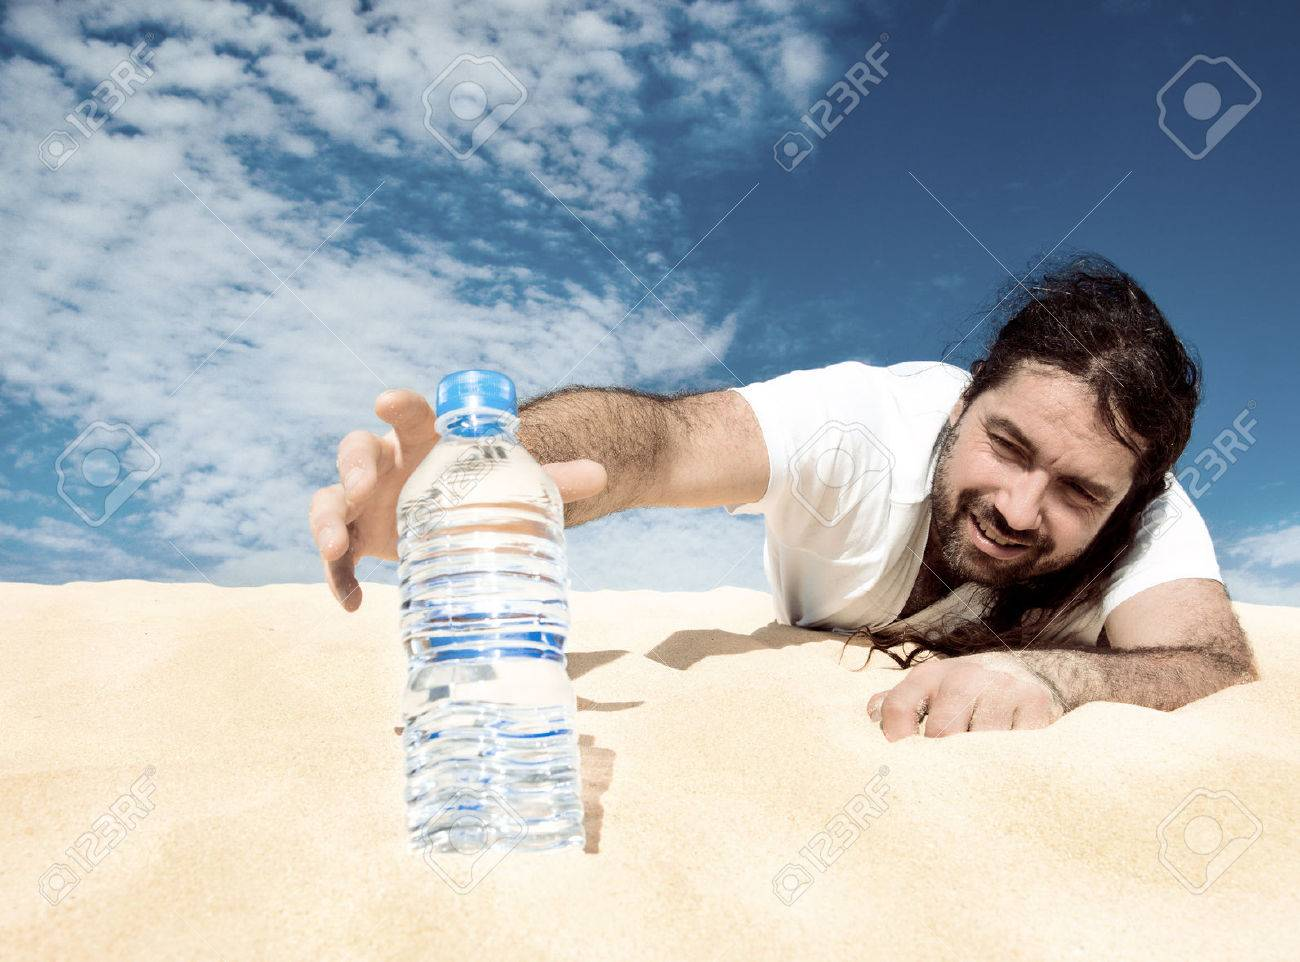 Thirsty man in the desert reaches for a bottle of water, toned image - 32842327